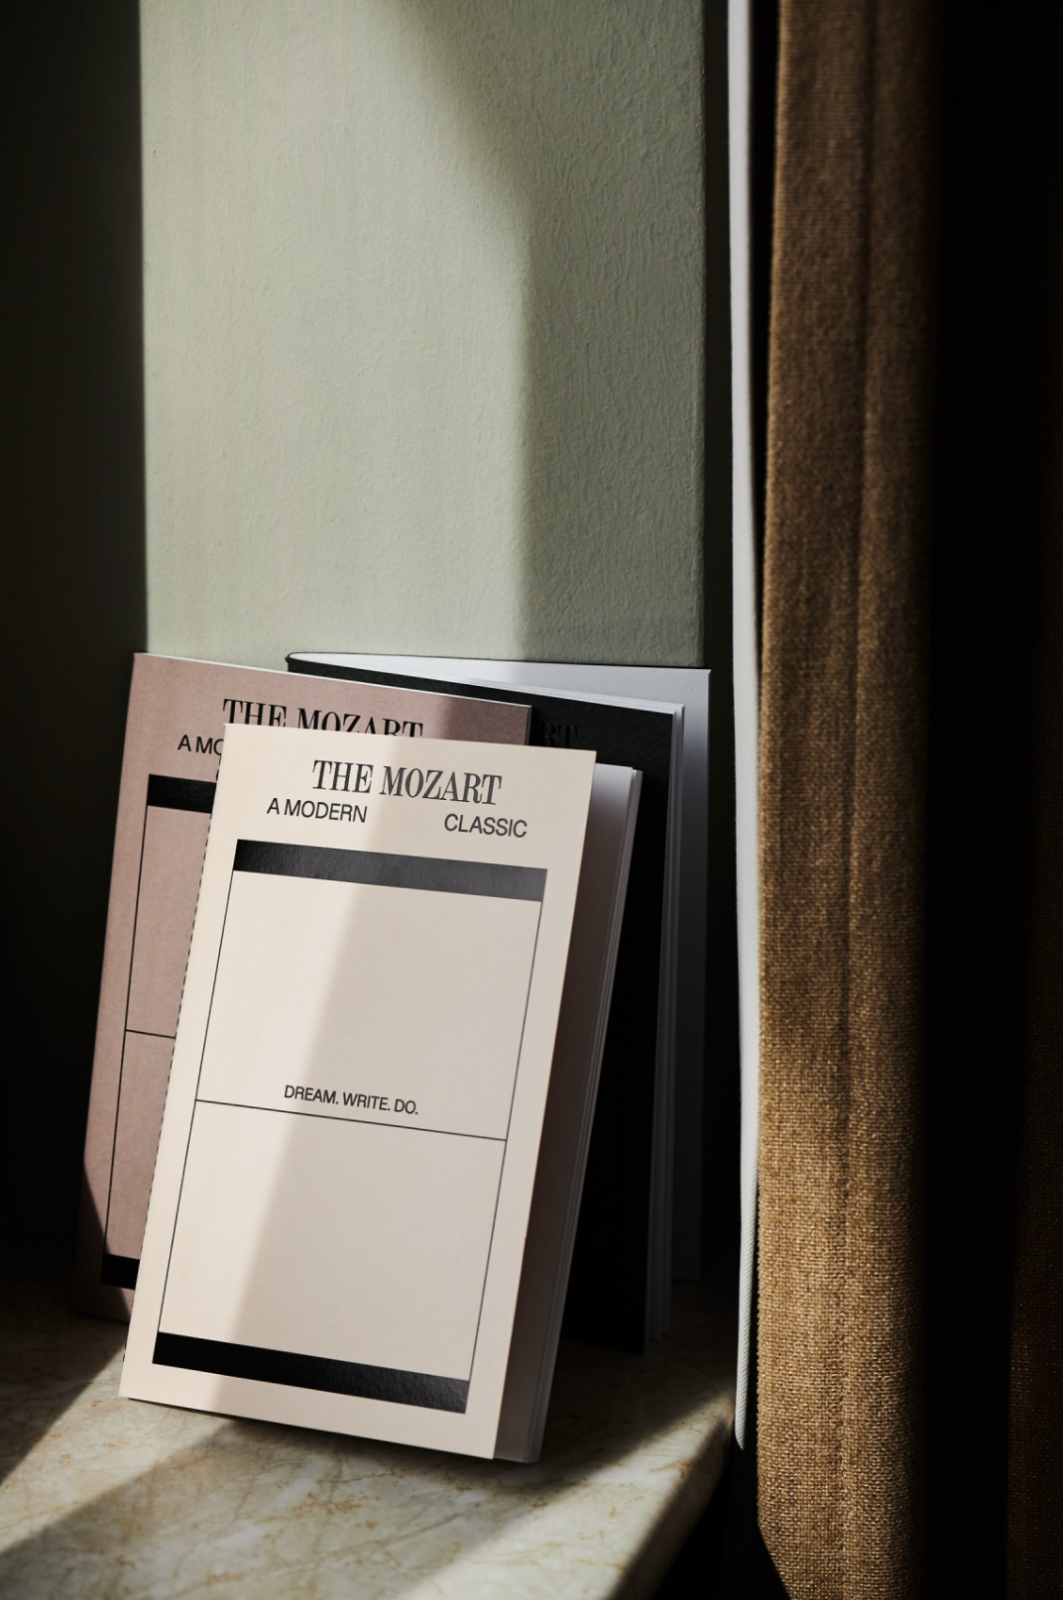 The Mozart Hotel Branding Combines Classical Notes with Contemporary Flair